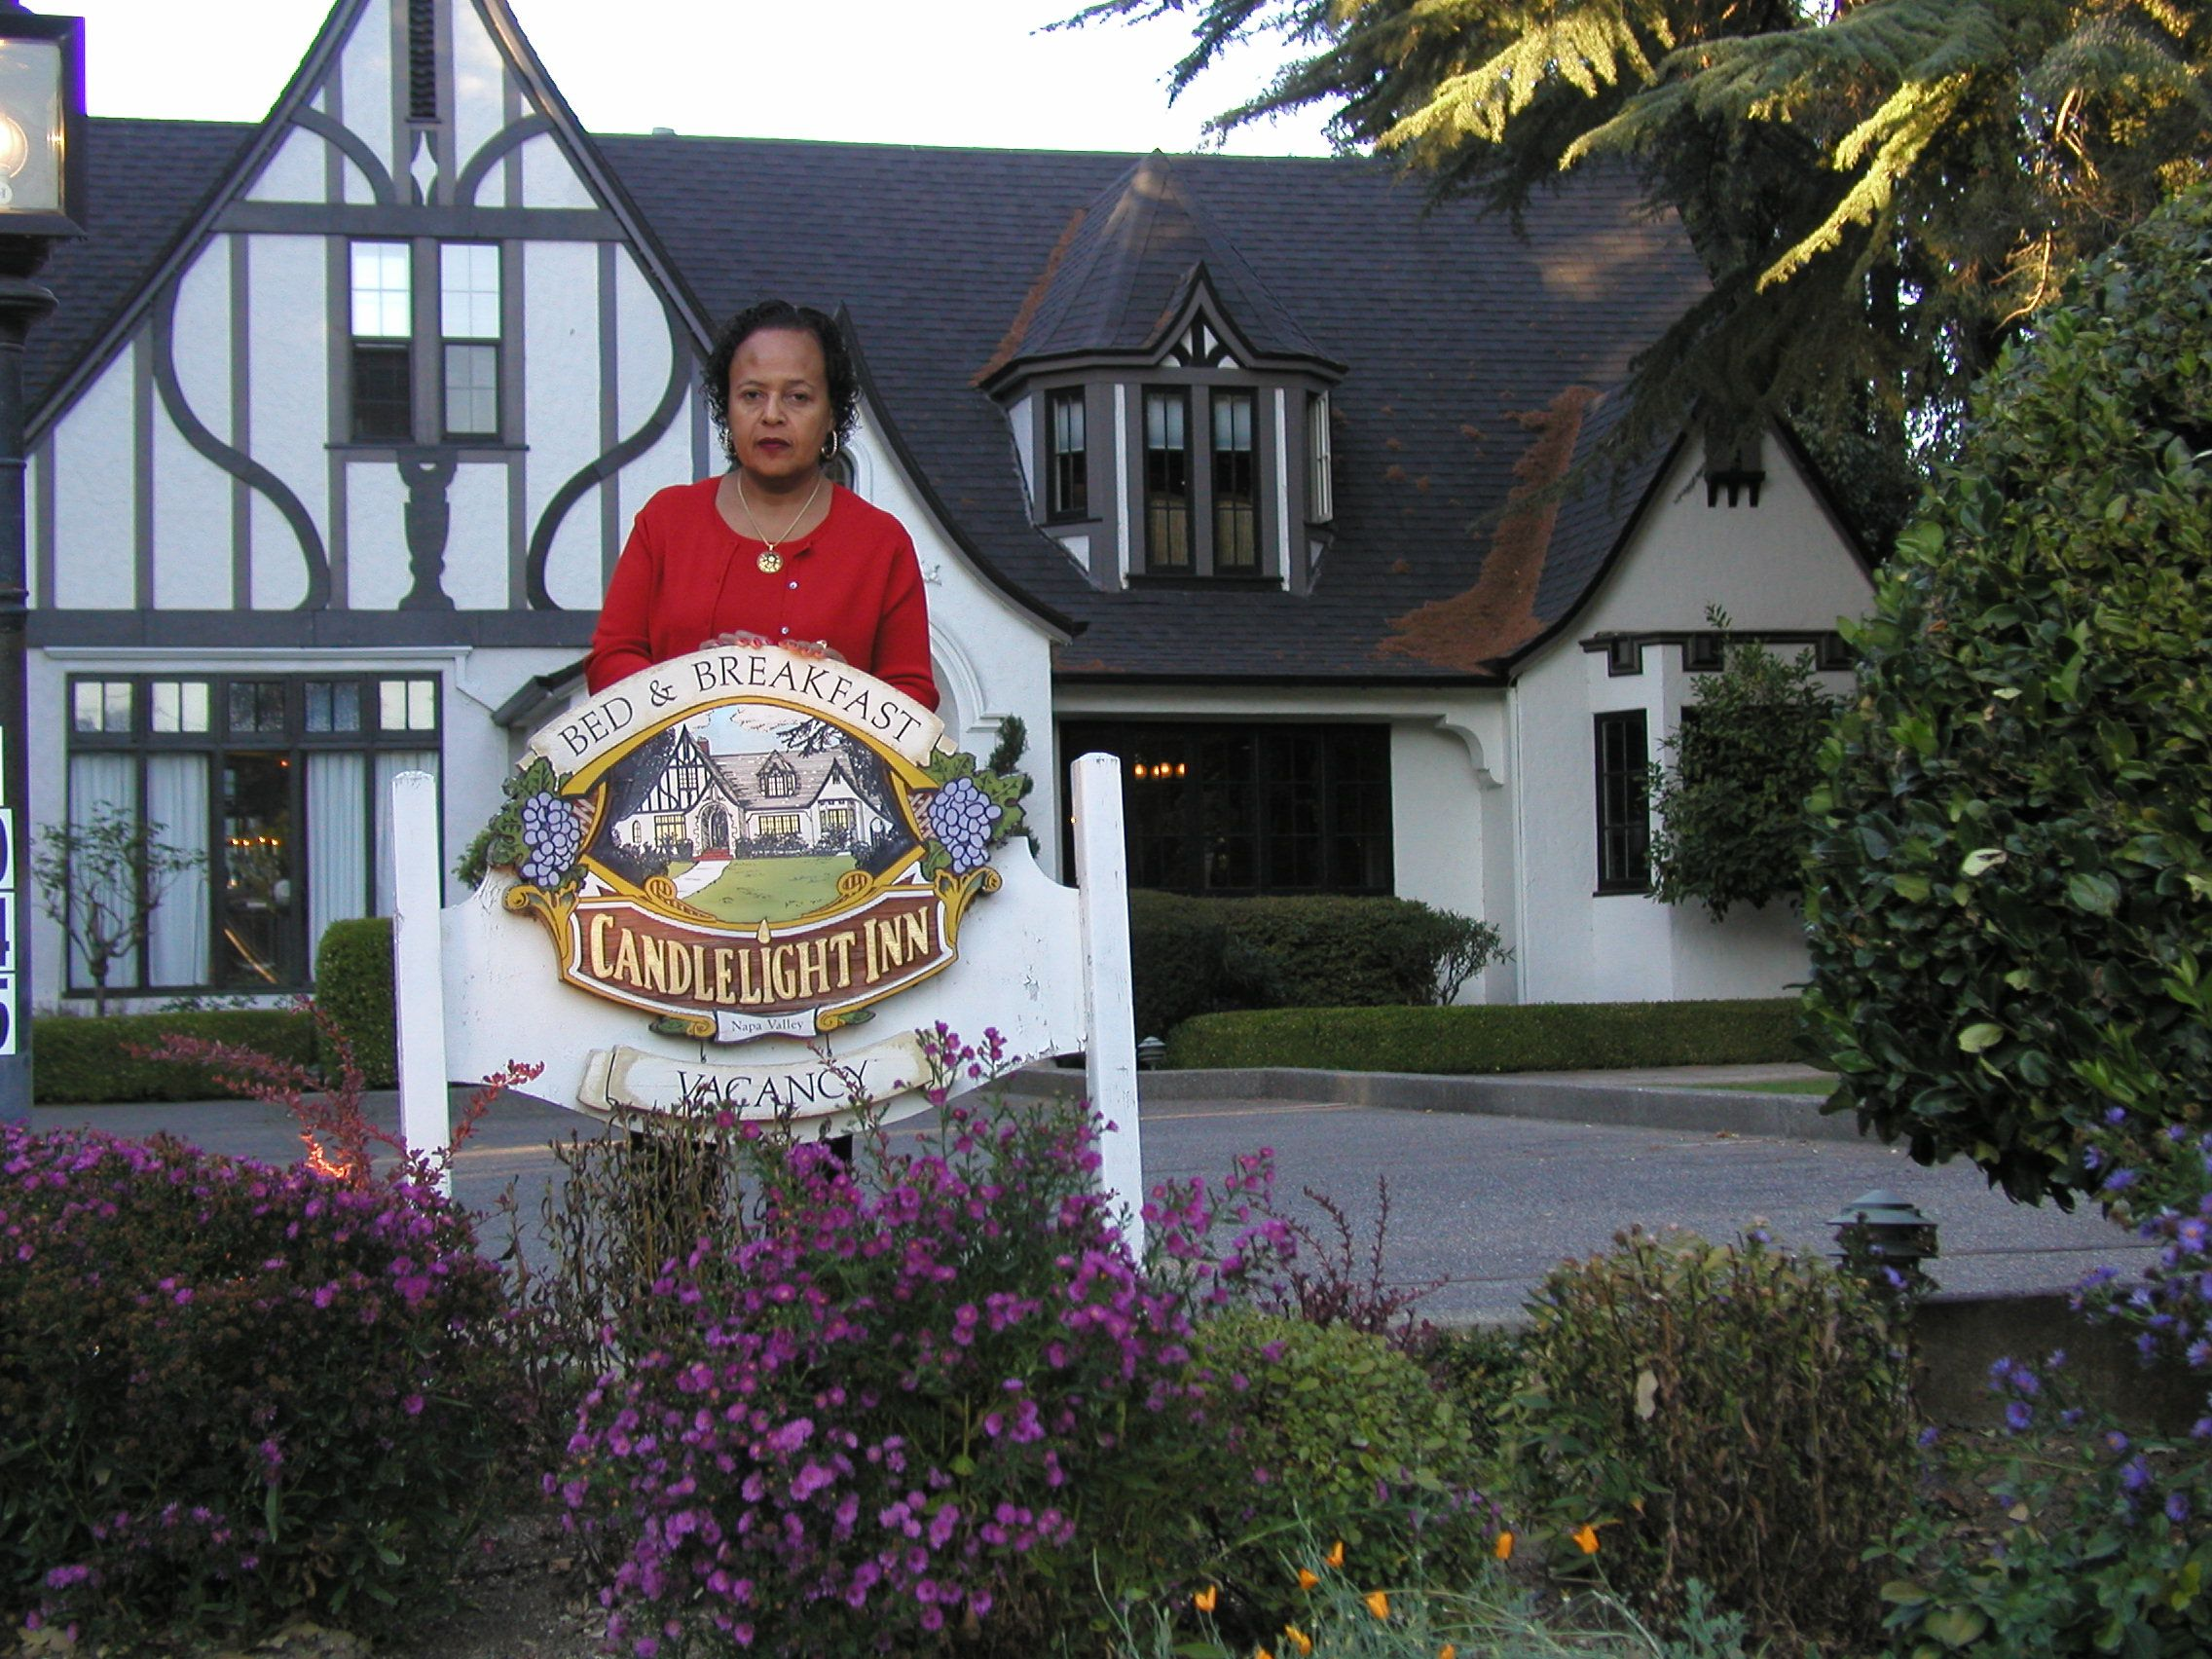 Napa Valley California Bed and Breakfast! Candlelight INN